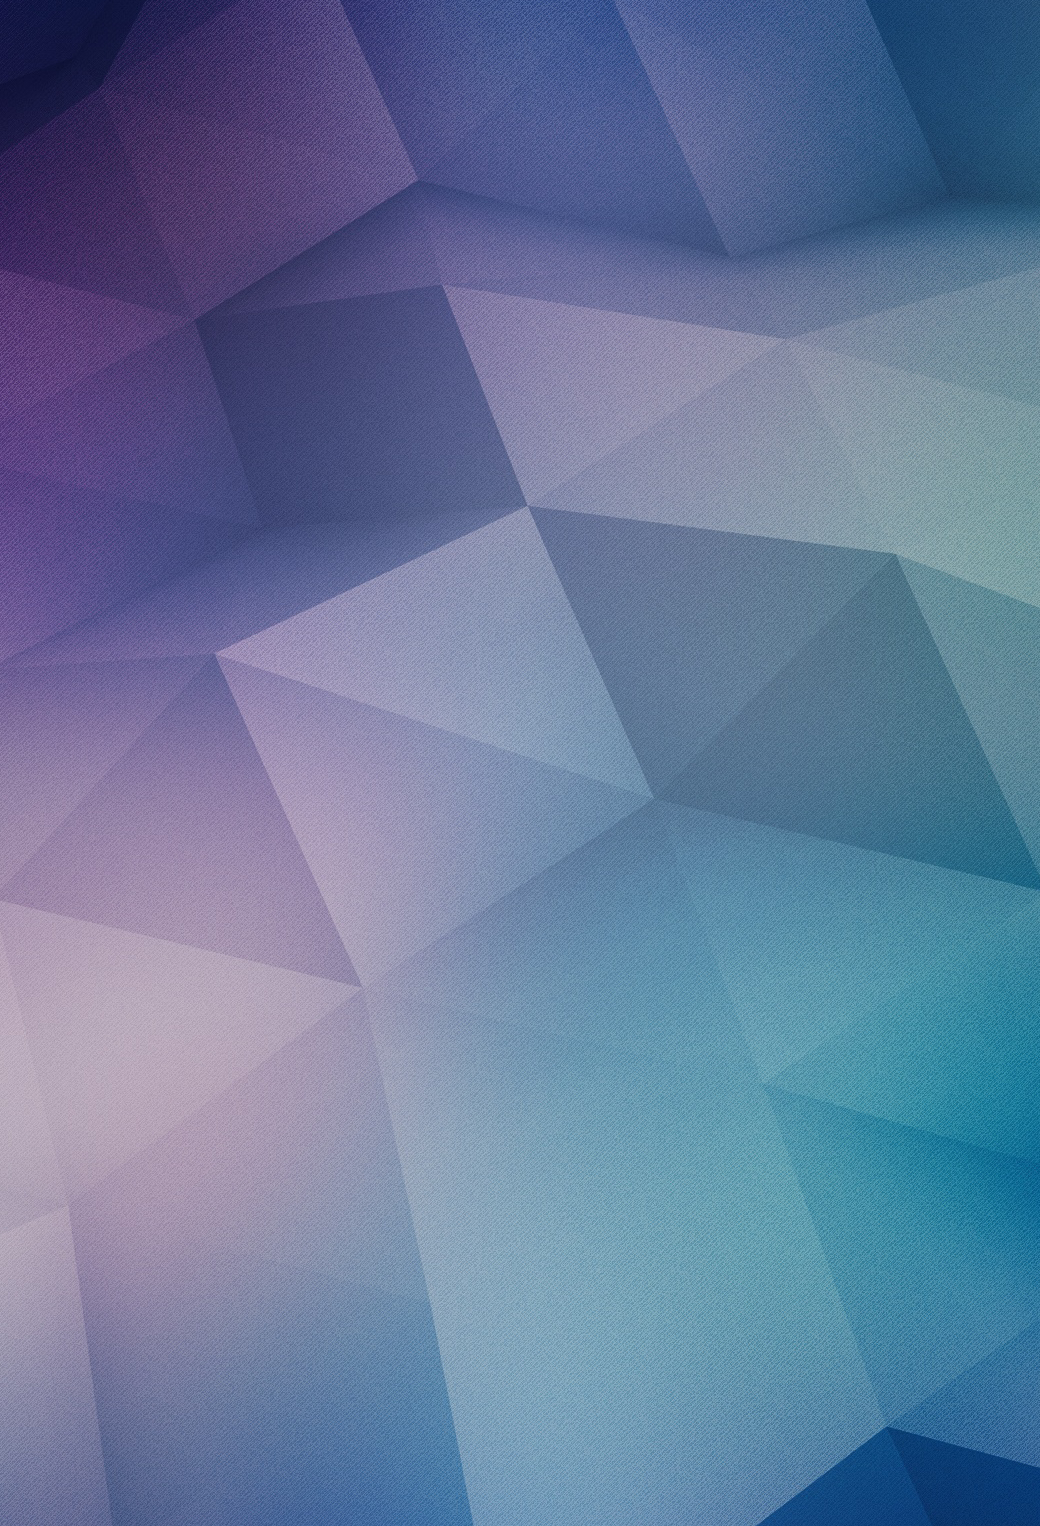 Colorful Iphone Wallpaper Wallpapers Of The Week Parallax Ready Walls For Ios 7